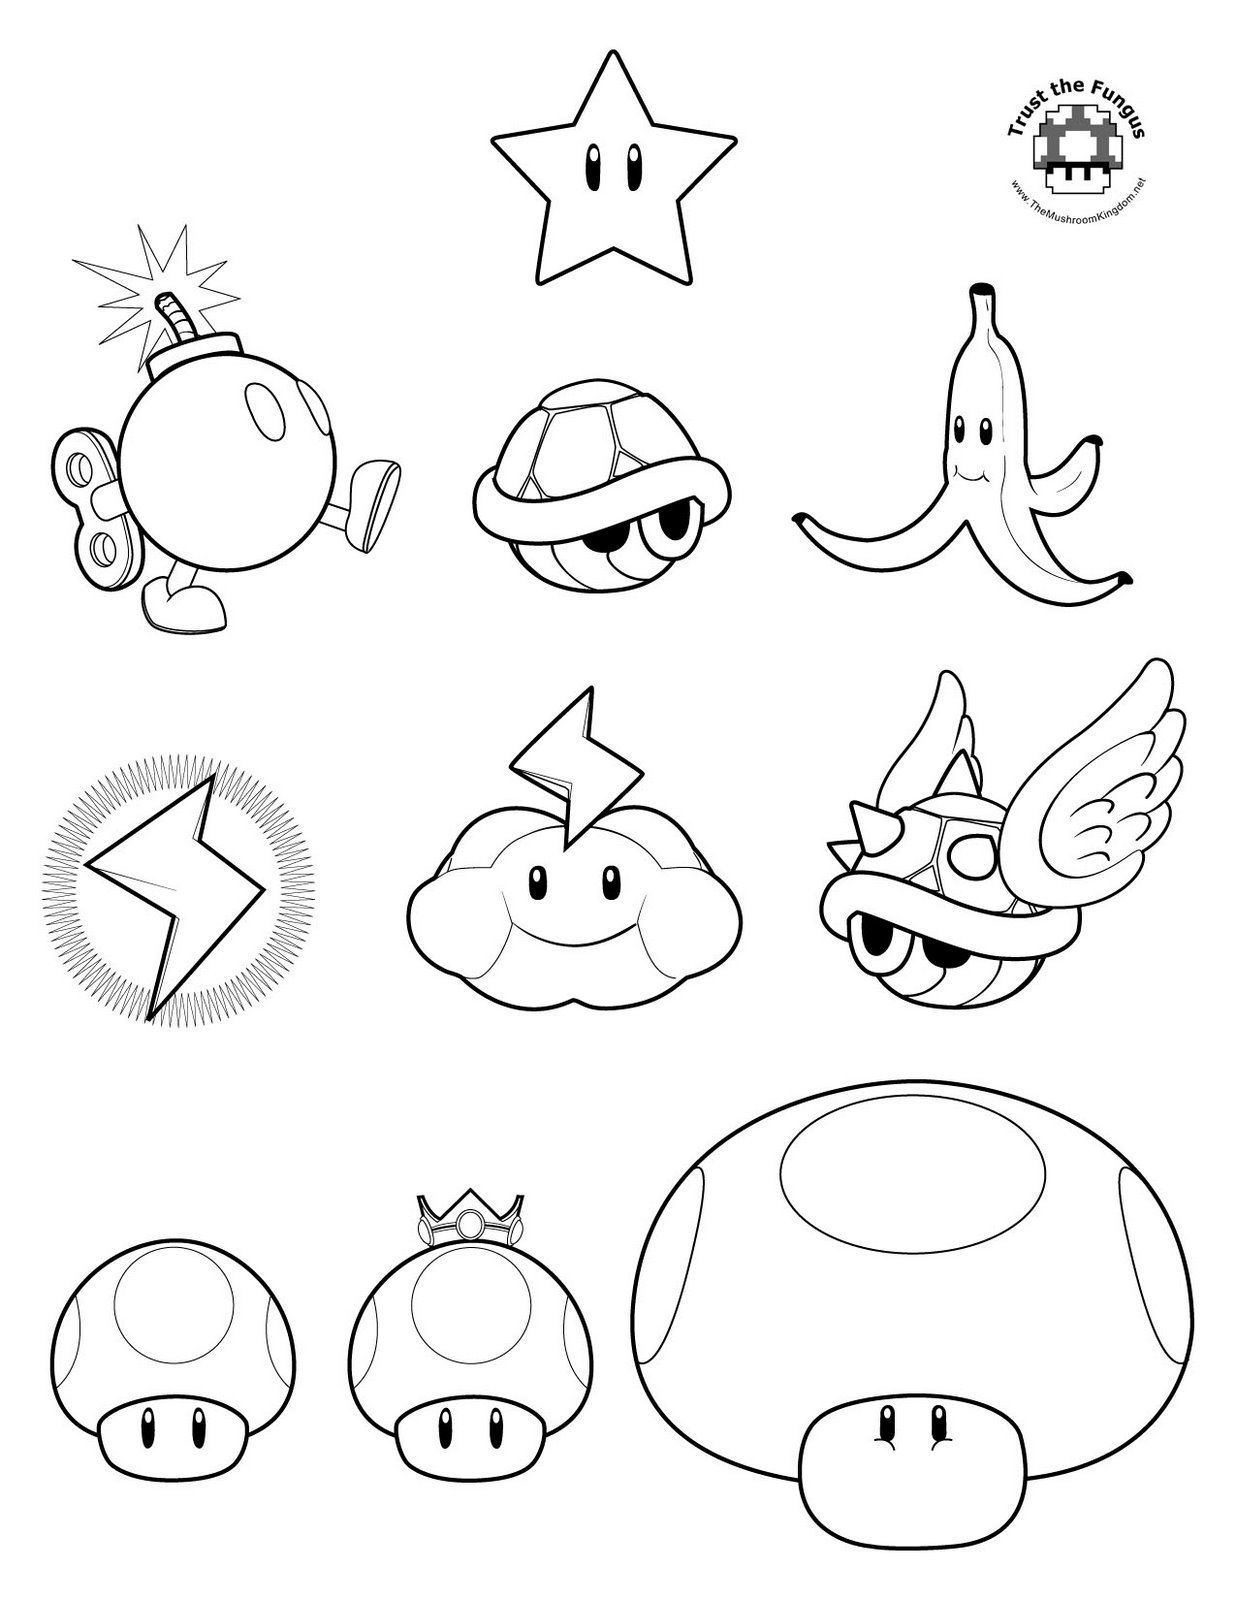 Mario To Color Clipart - Clipart Kid